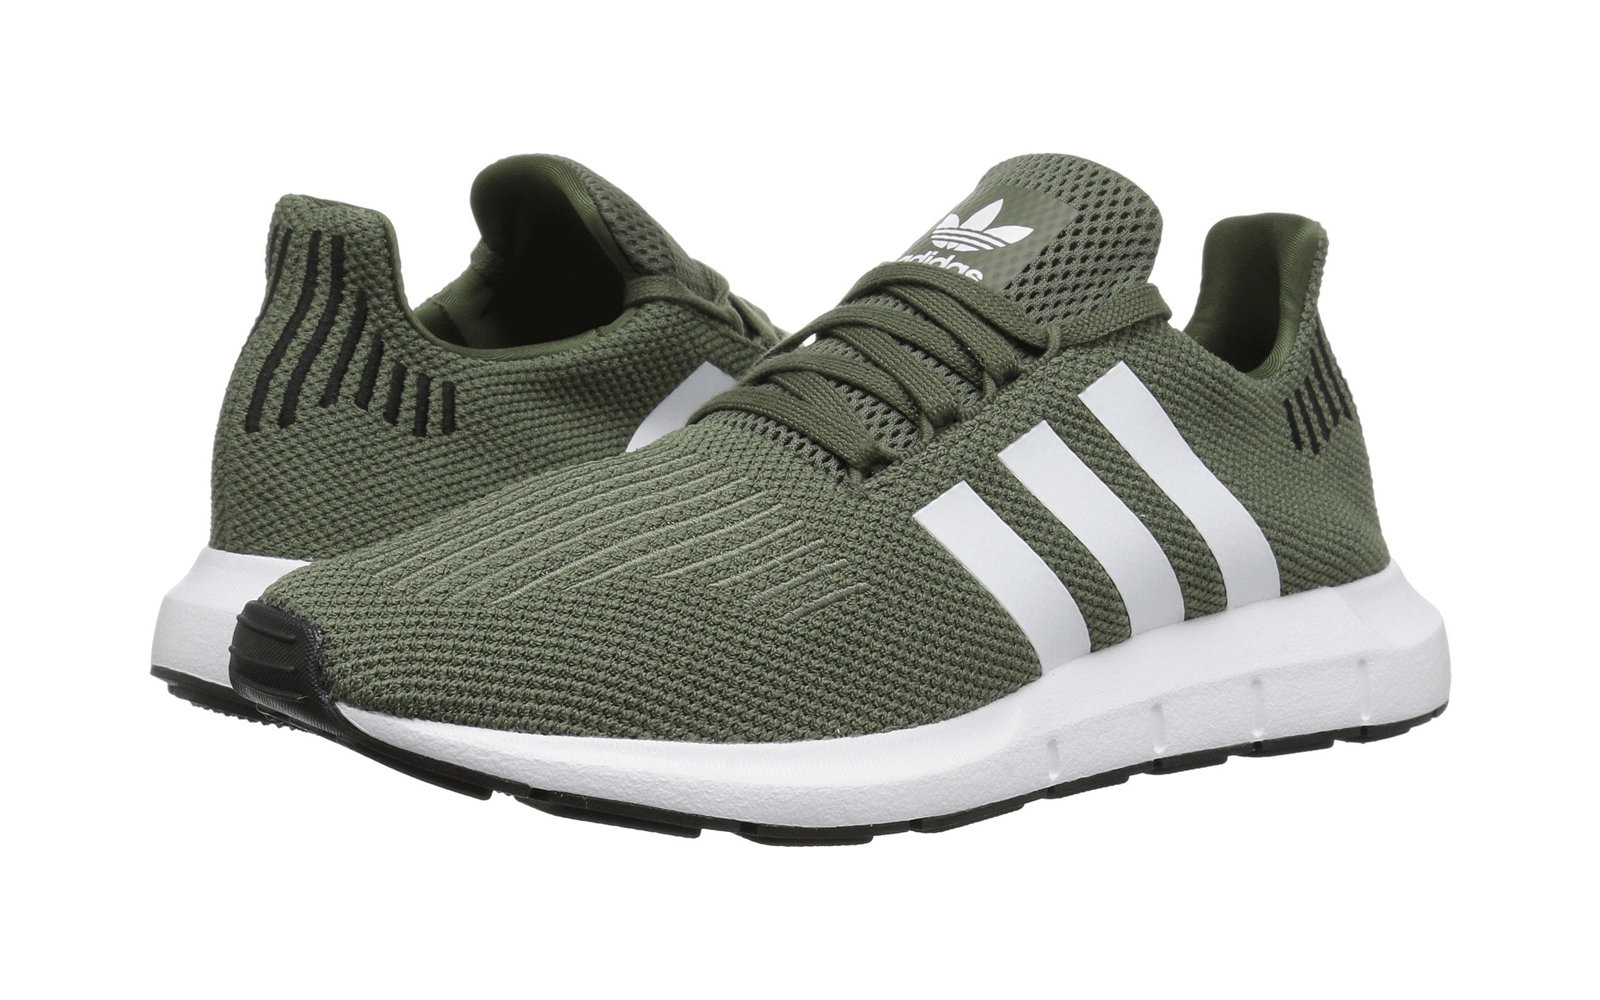 Adidas Originals Swift Run W in Base Green/White/Black